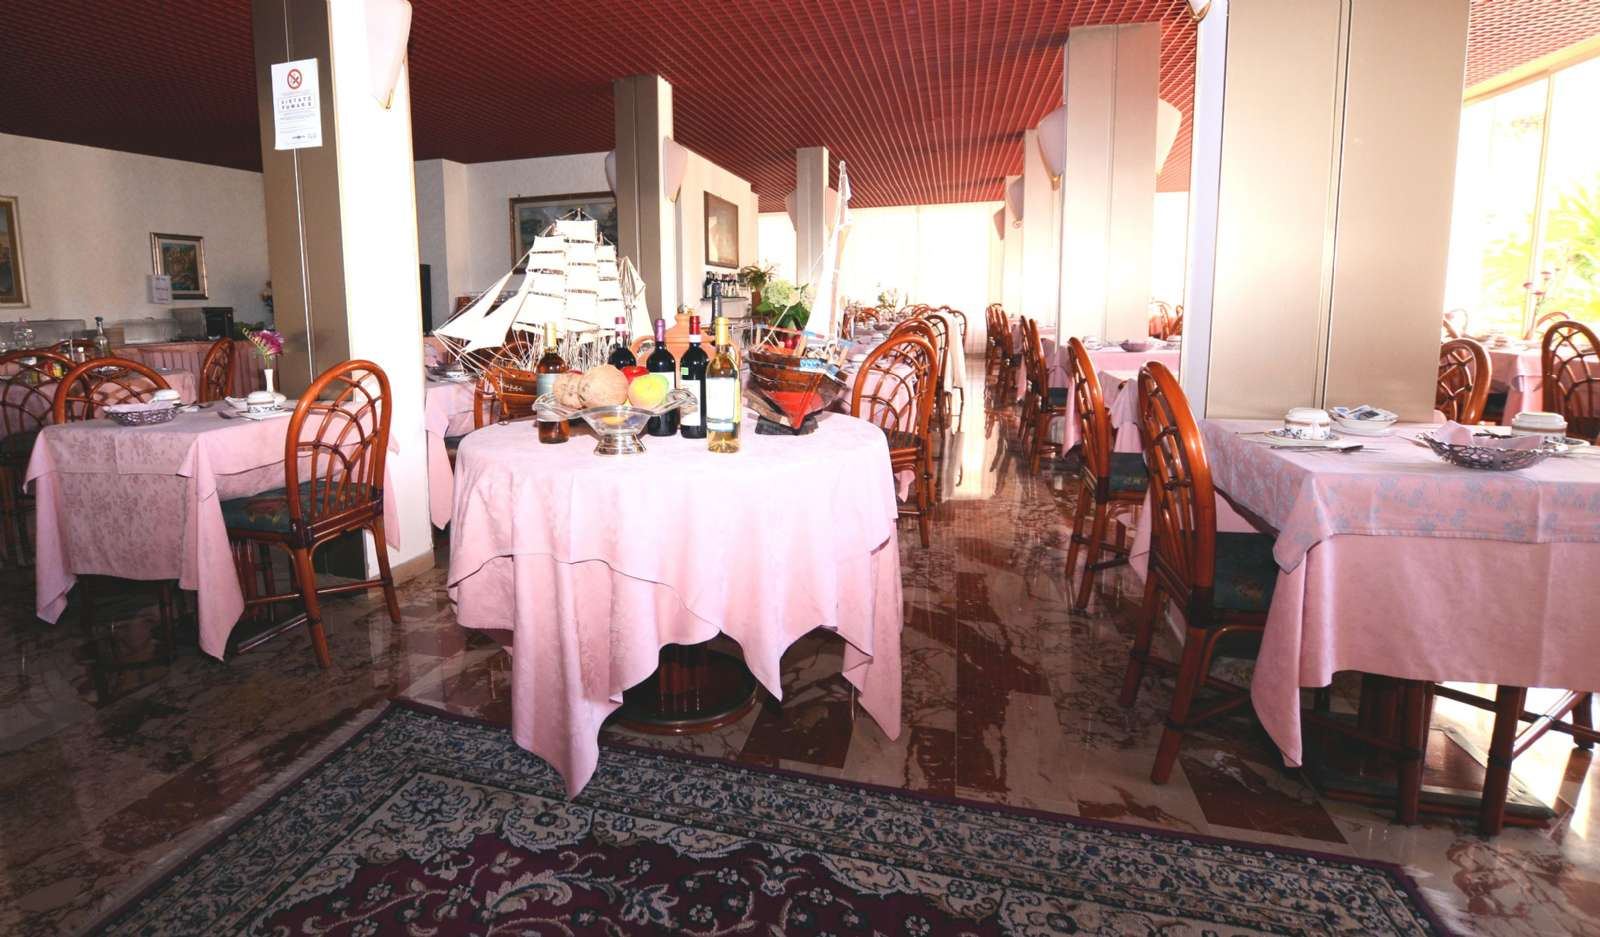 The hotel's breakfast room